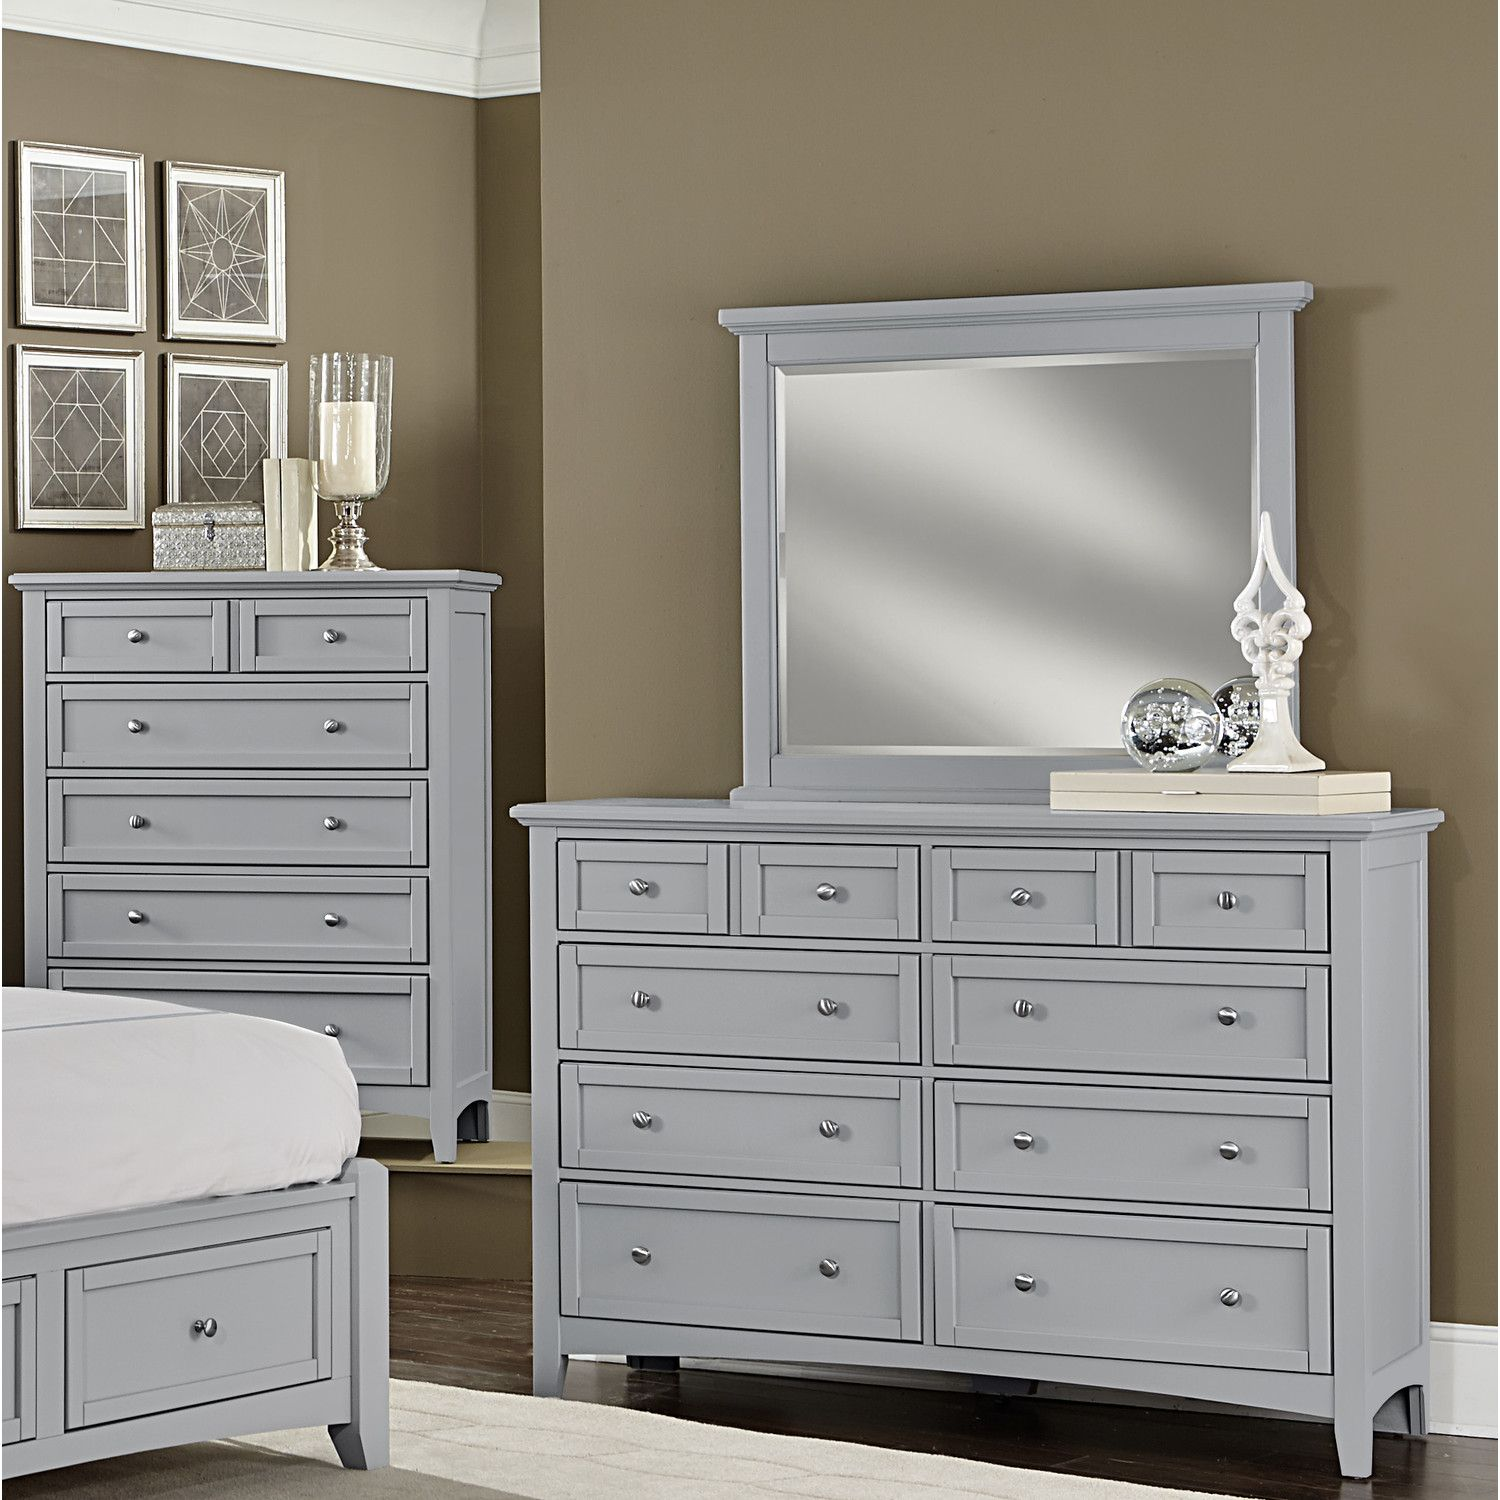 $679   Wayfair $813 If You Include Mirror · 8 Drawer DresserDresser ...